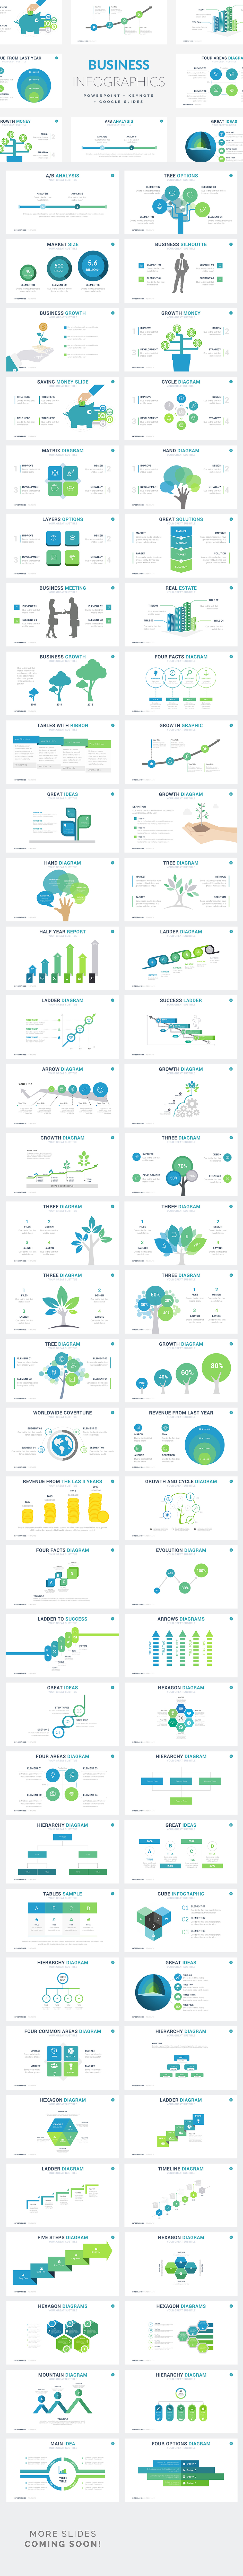 Business Infographic Templates - PowerPoint Templates - Keynote Themes - Google Slides